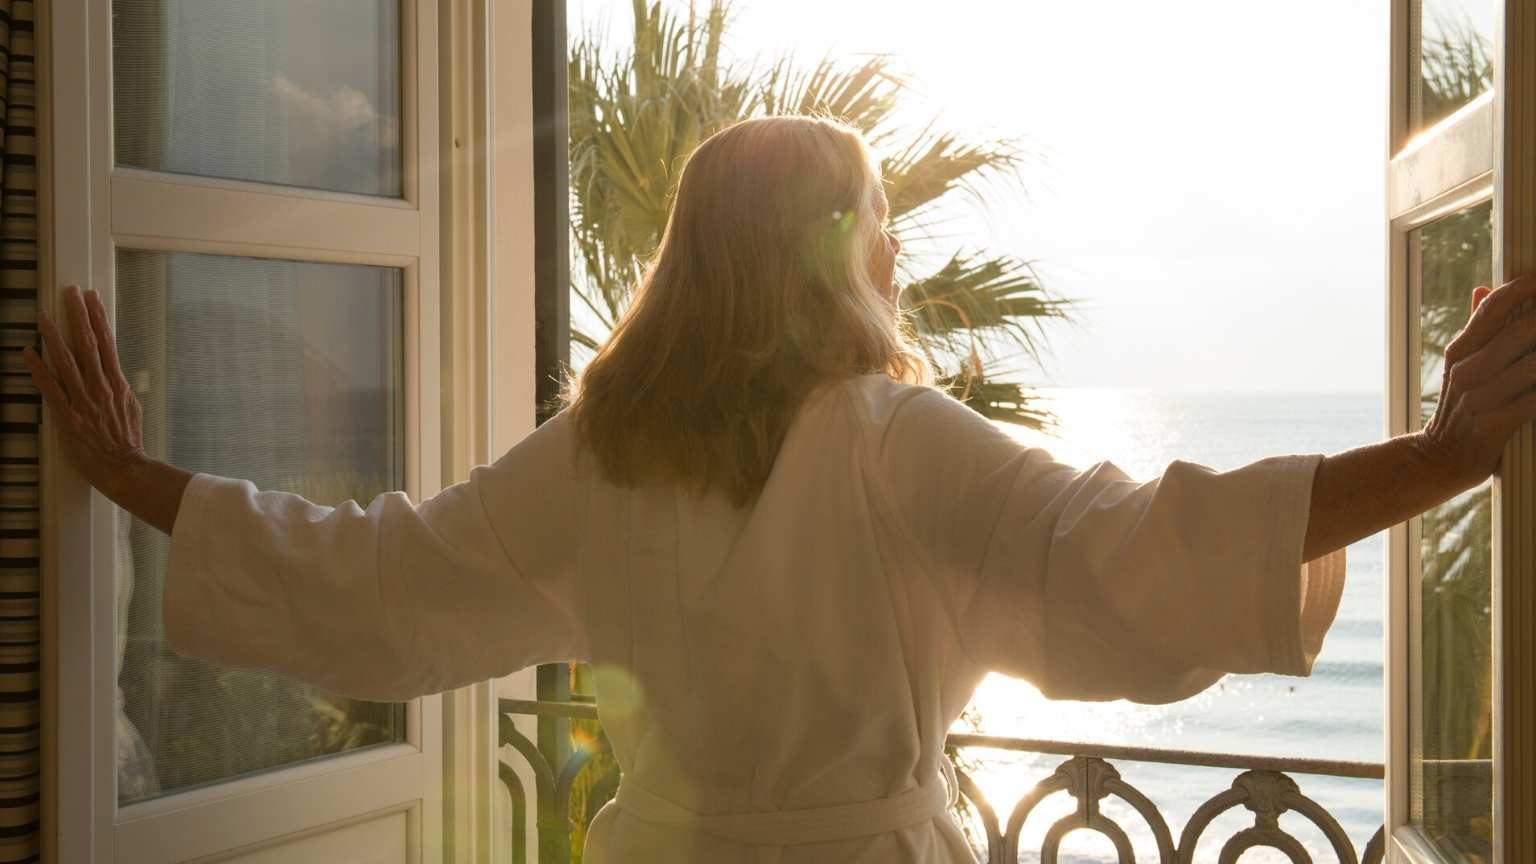 woman opening a window in a hotel